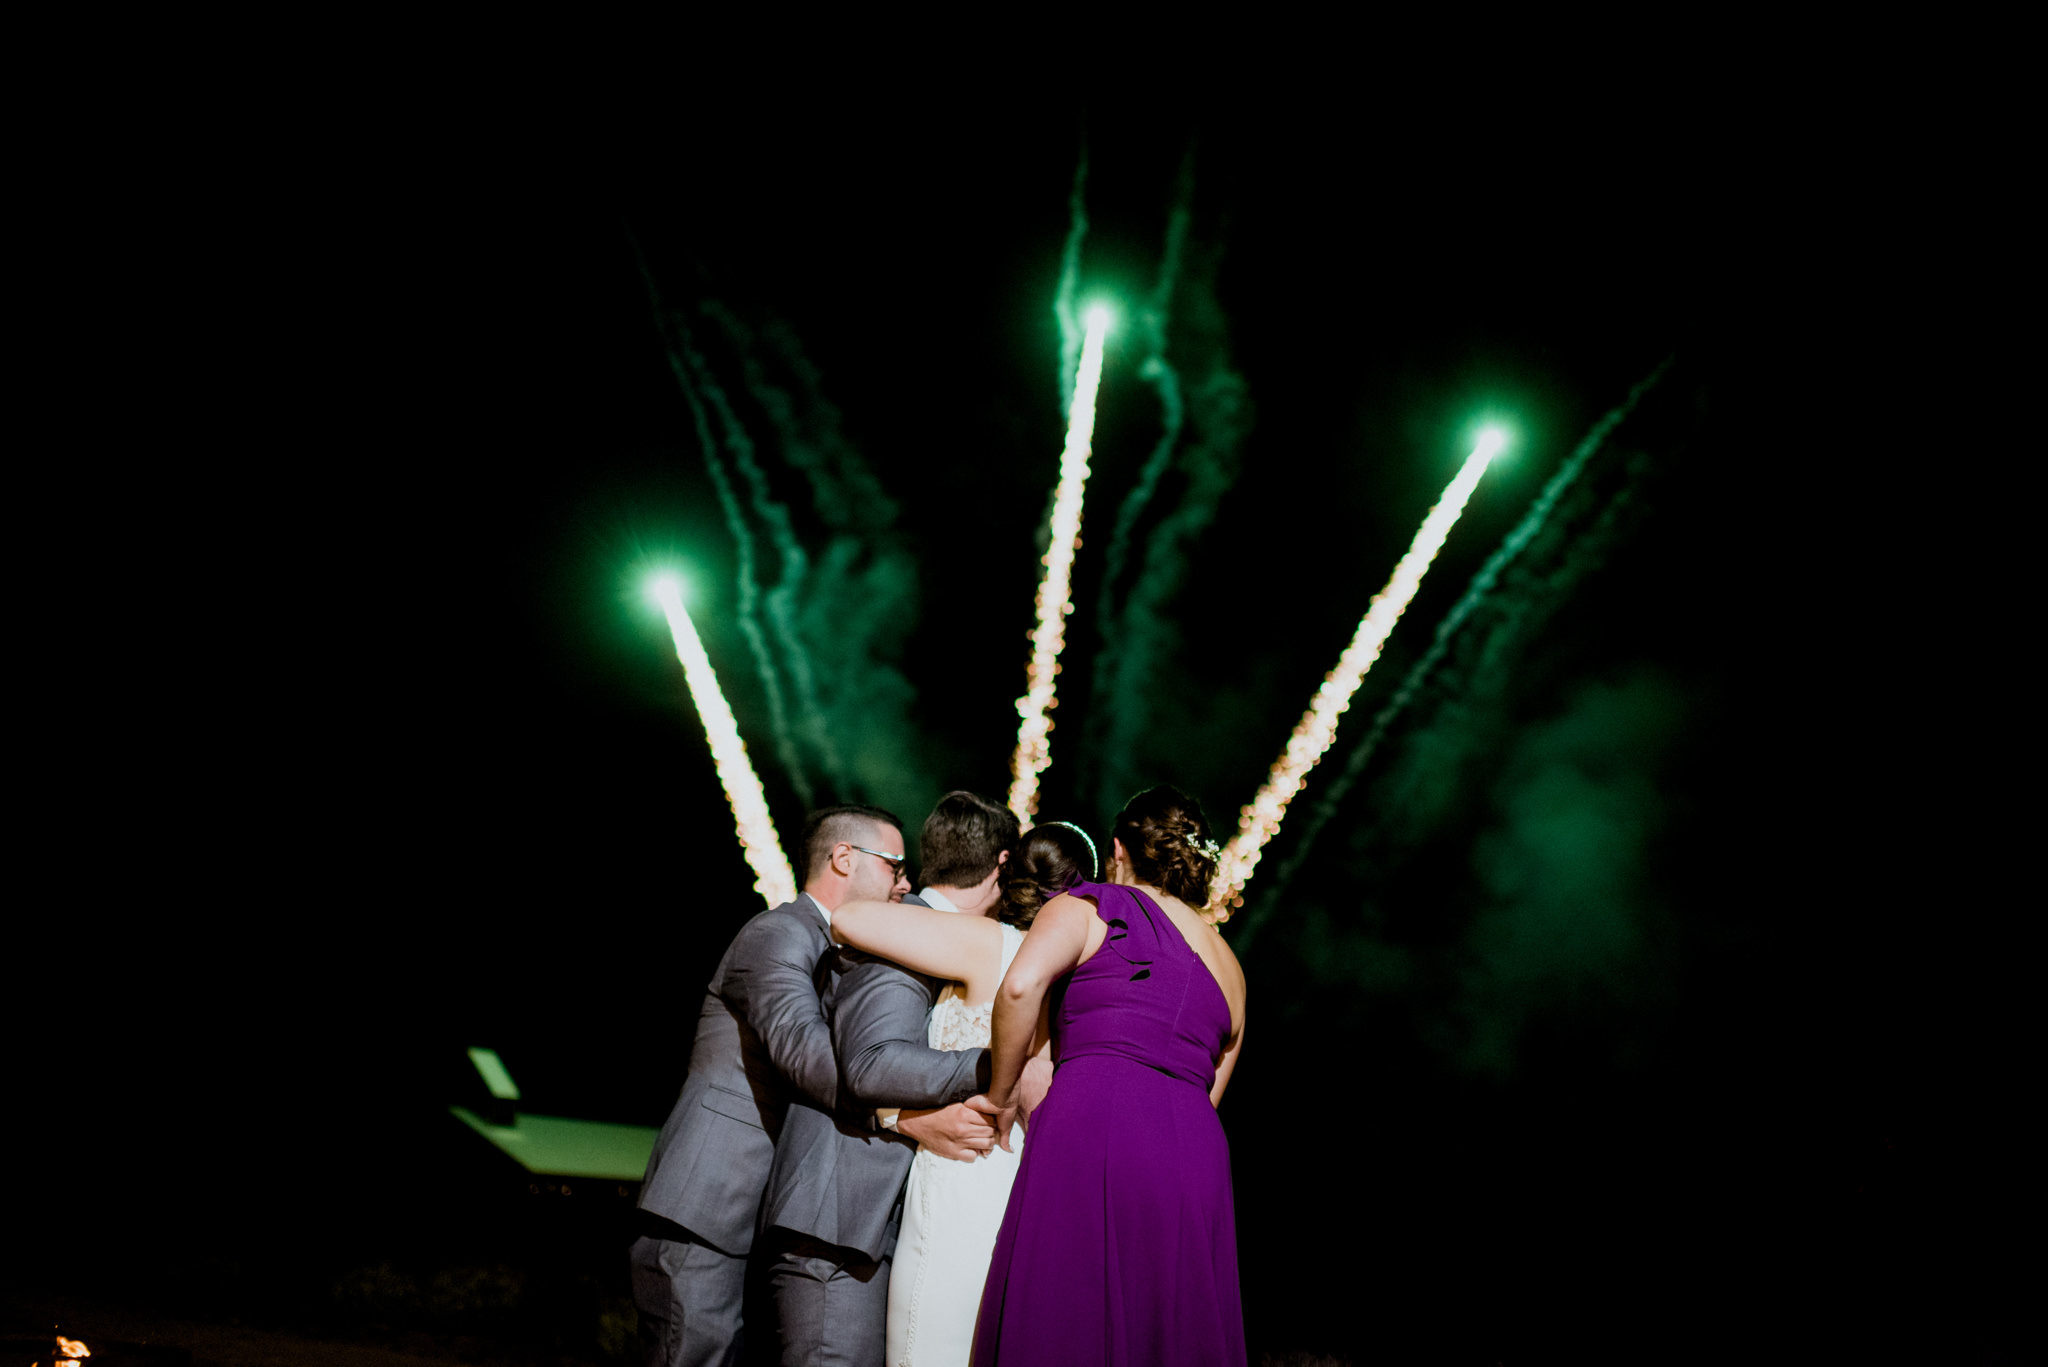 A wedding group hugs each other in front of a fireworks display